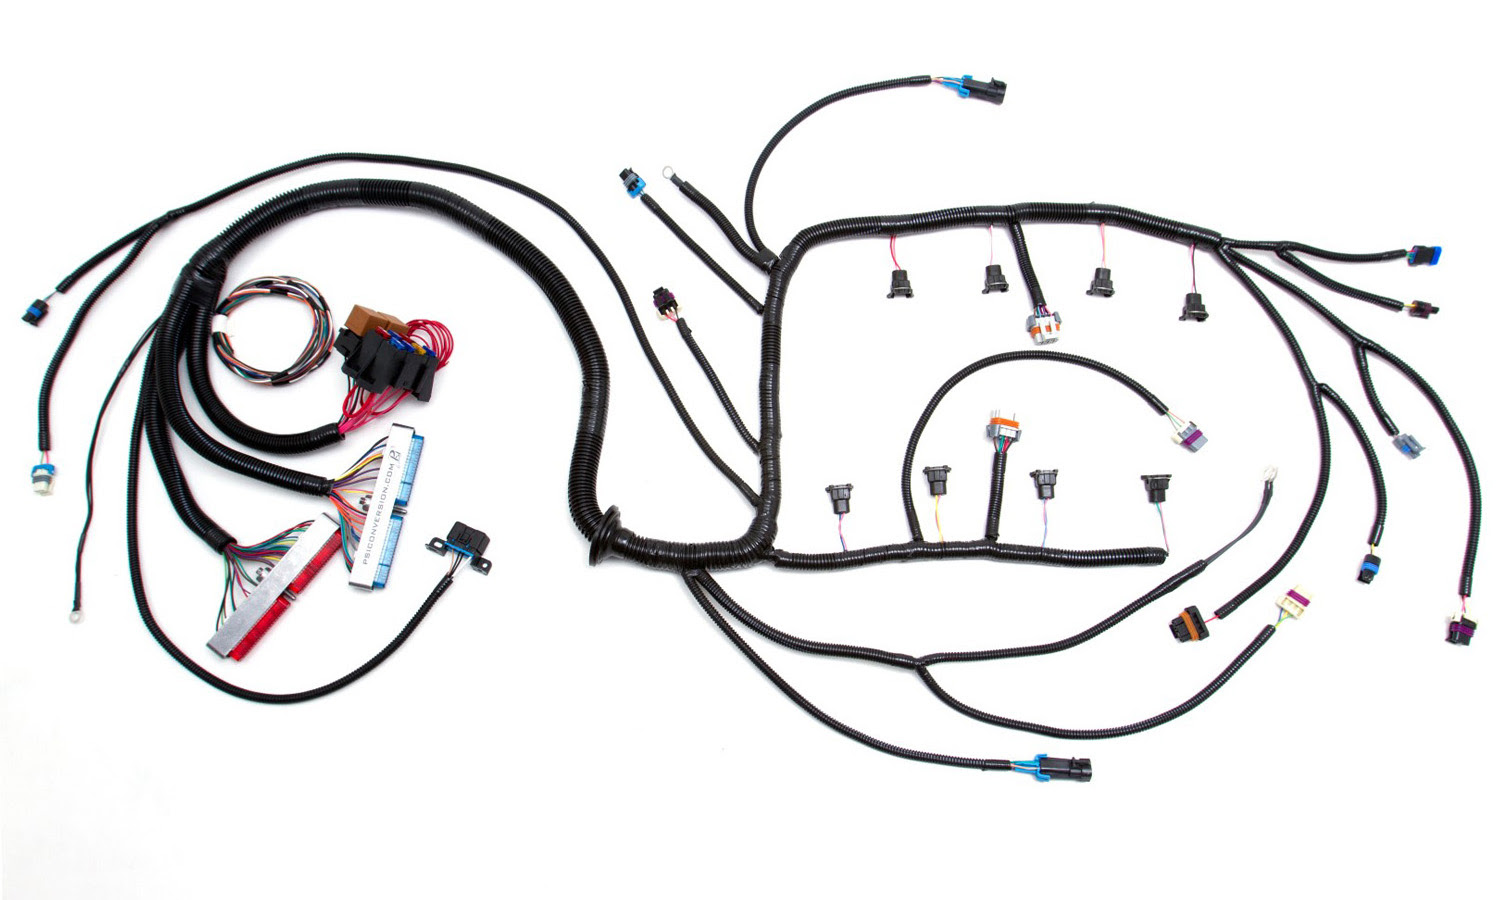 20 Inspirational Psi Wiring Harnesses